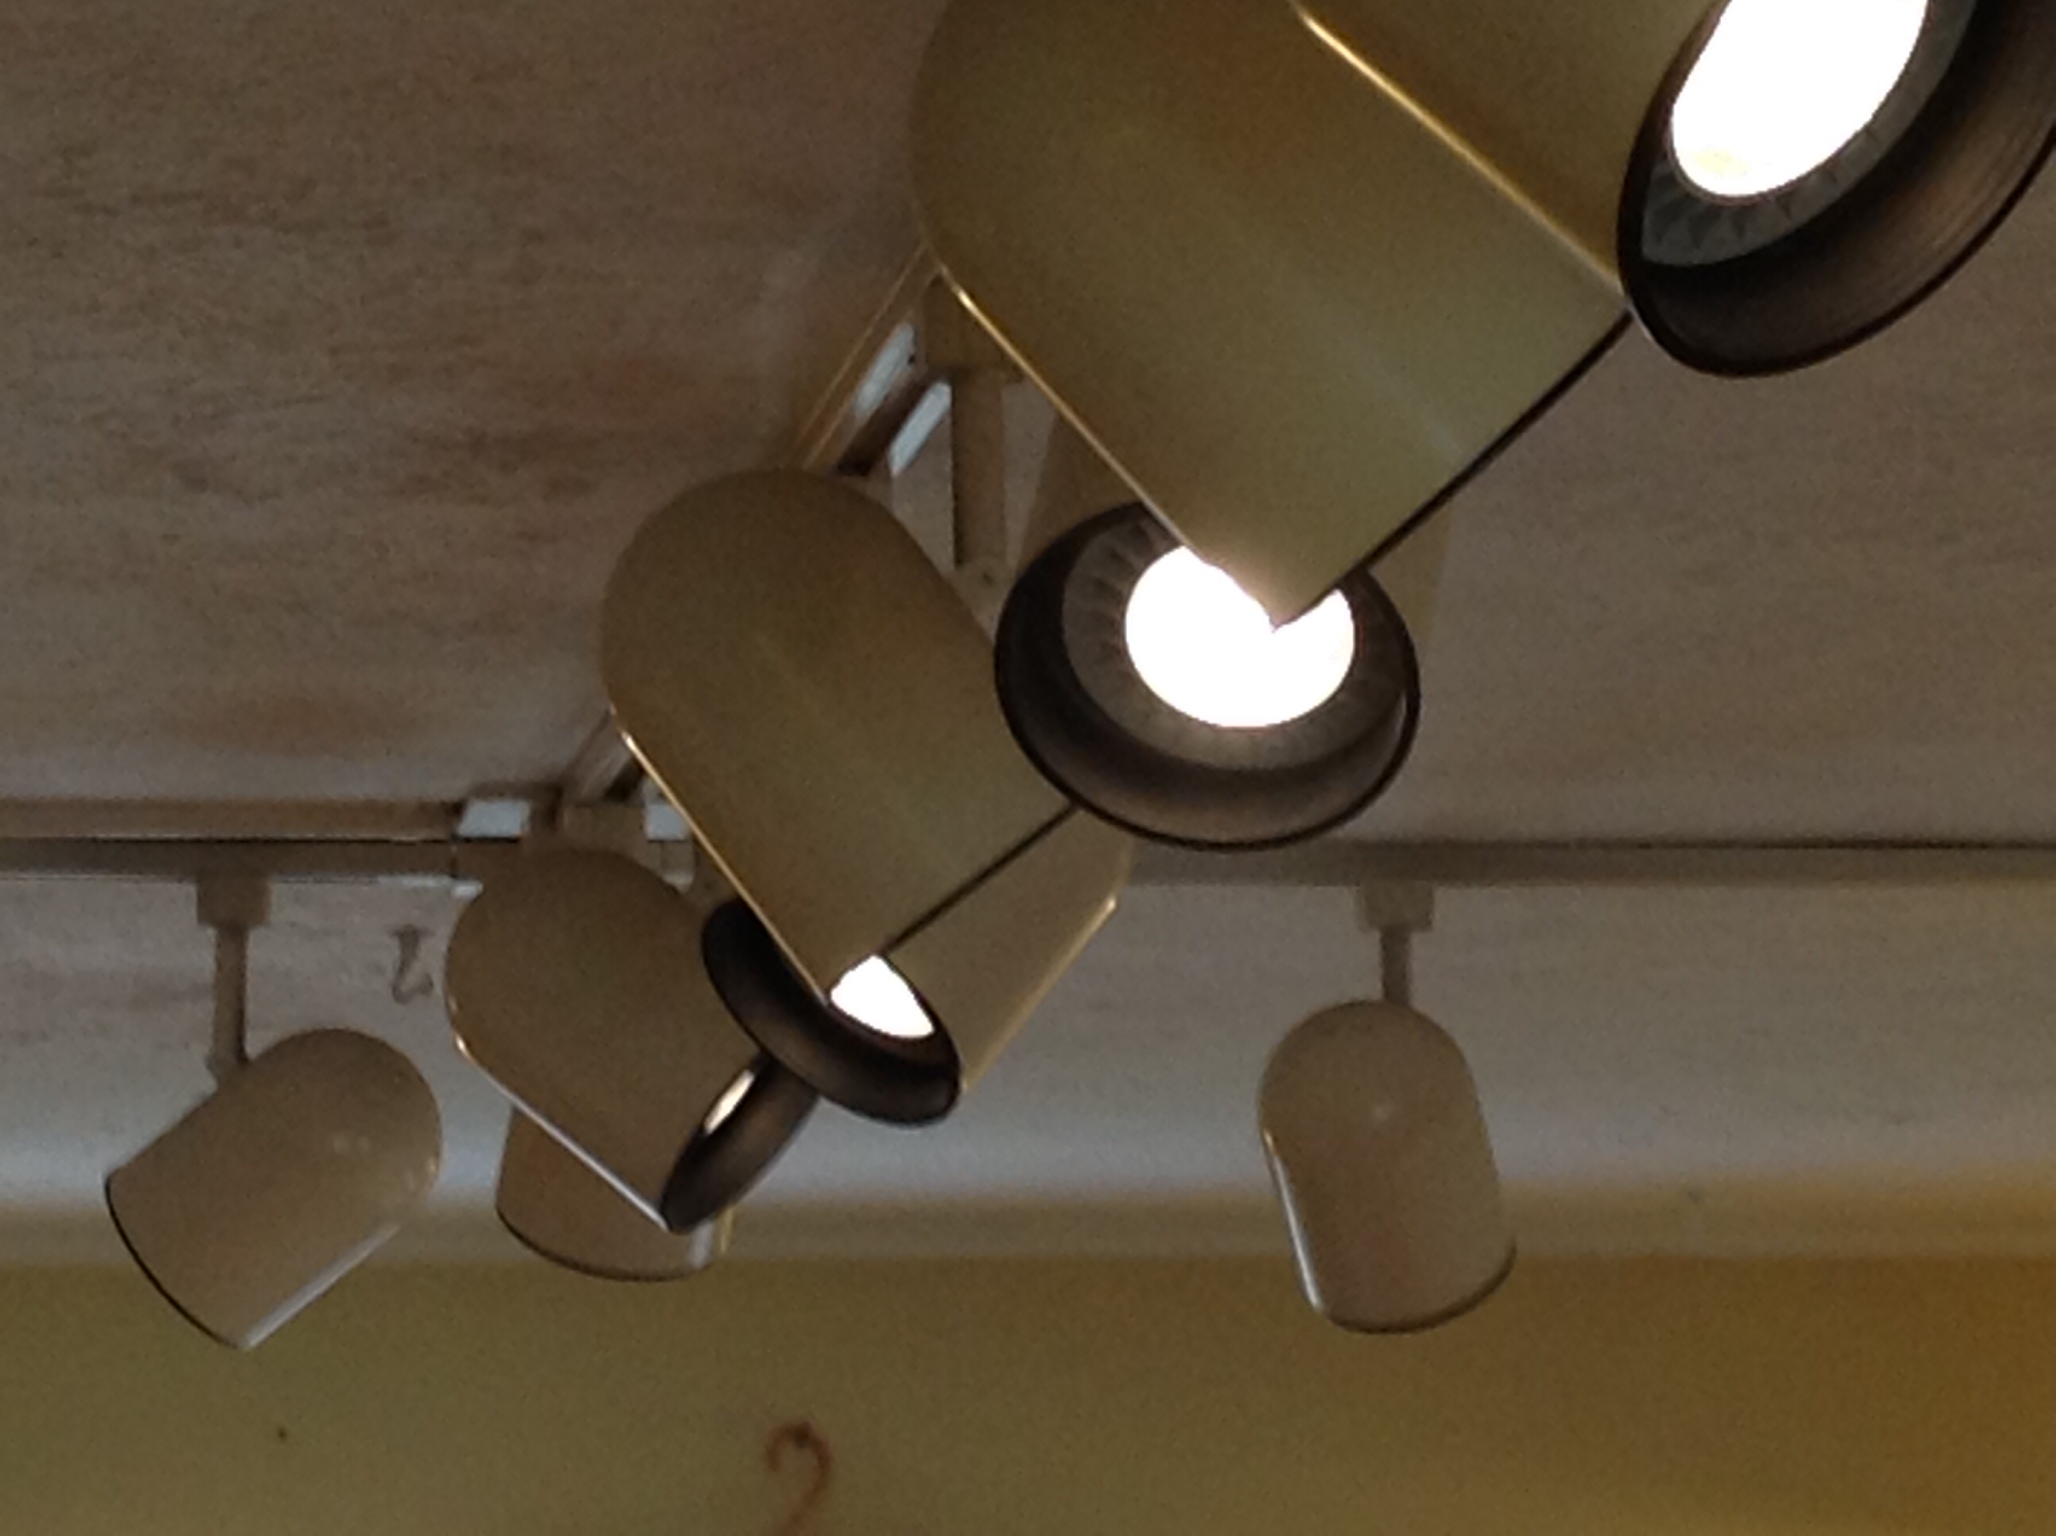 We were glad to find bulbs that worked in our old dimmer track light fixtures.